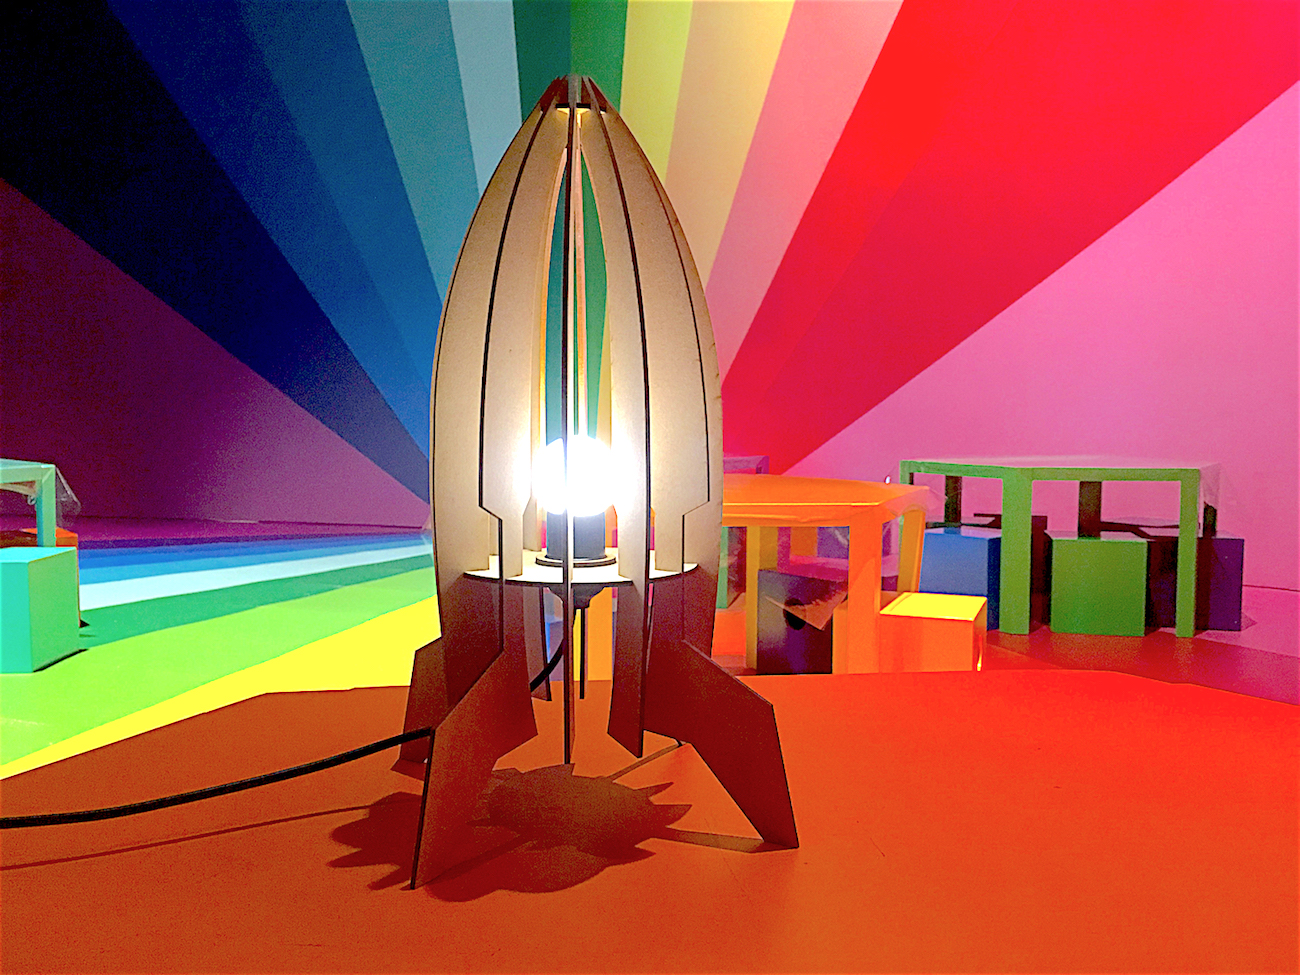 Make Your Own: Space Rocket Lamp (21 Jan)